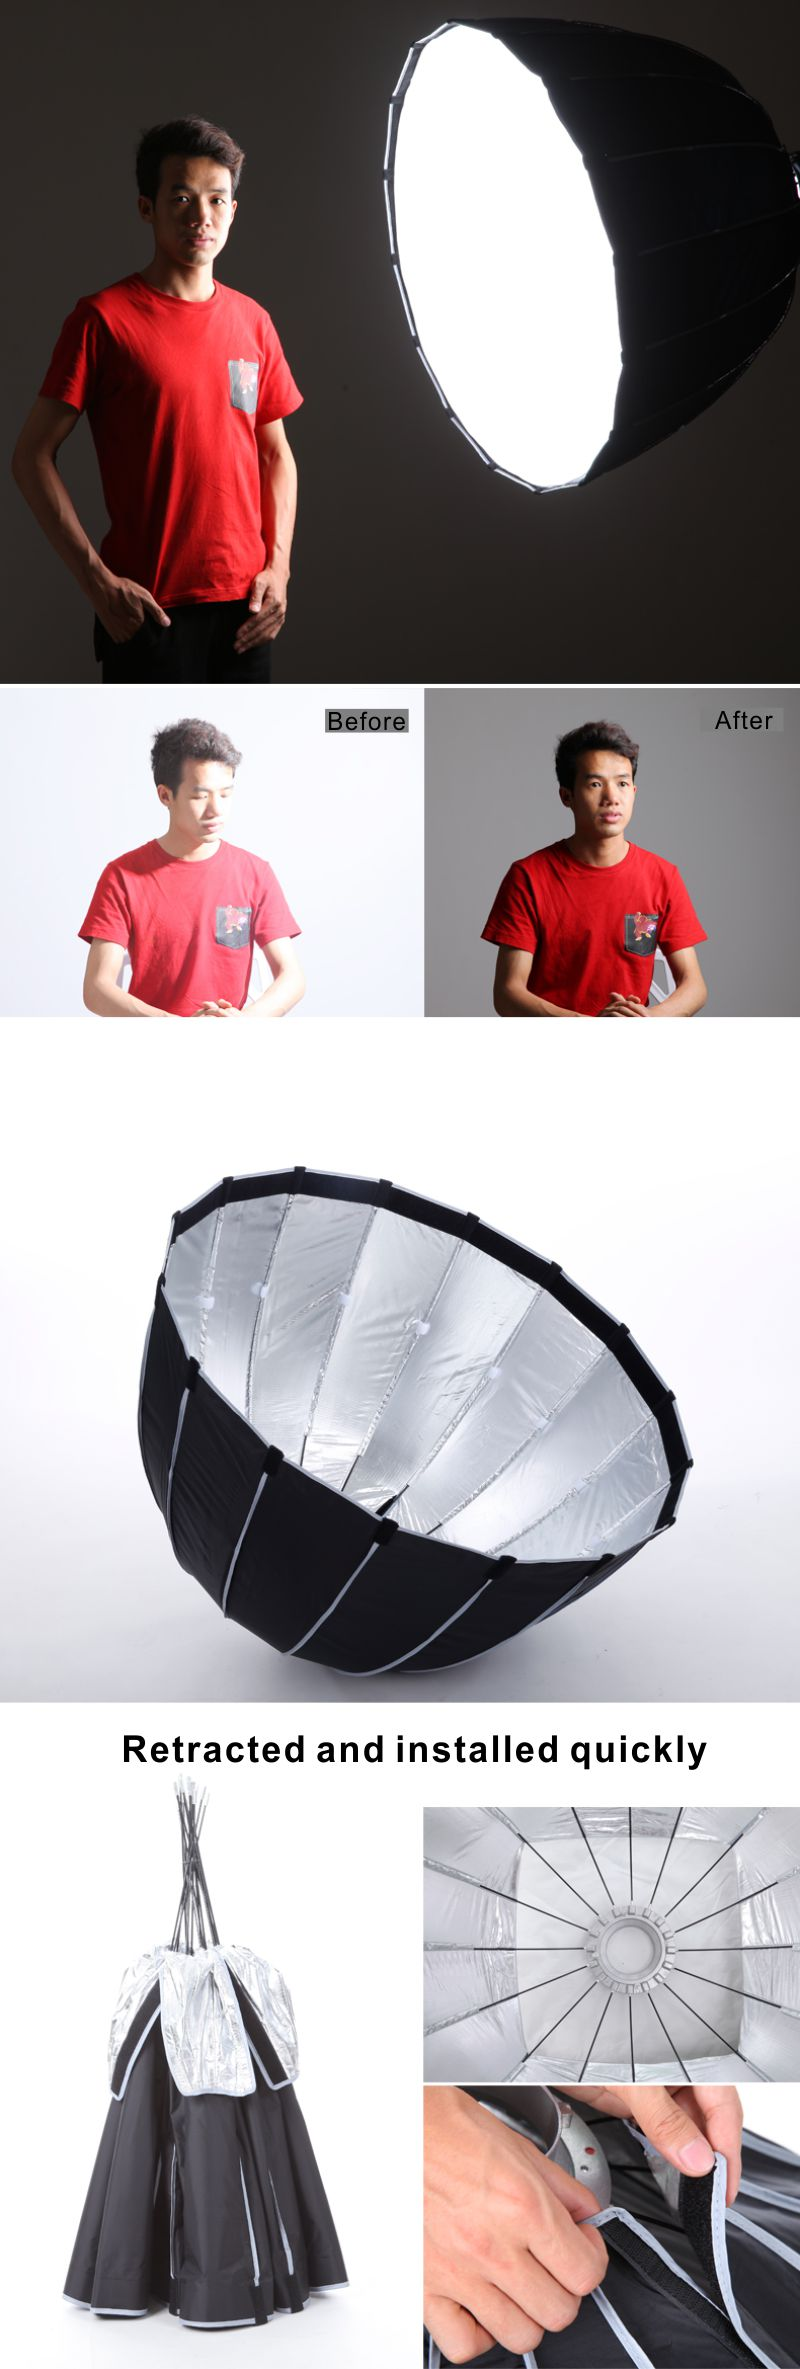 Falcon Eyes Foldable Parabolic Soft Box 90cm Dome Hexadecagon (16-hliðar) Softbox Reflector fyrir Mynd Studio Flash Speedlite PSB-9 Falcon Eyes Składany Paraboliczny Soft Box 90cm Dome Hexadecagon (16-stronny) Softbox Reflektor dla Phot